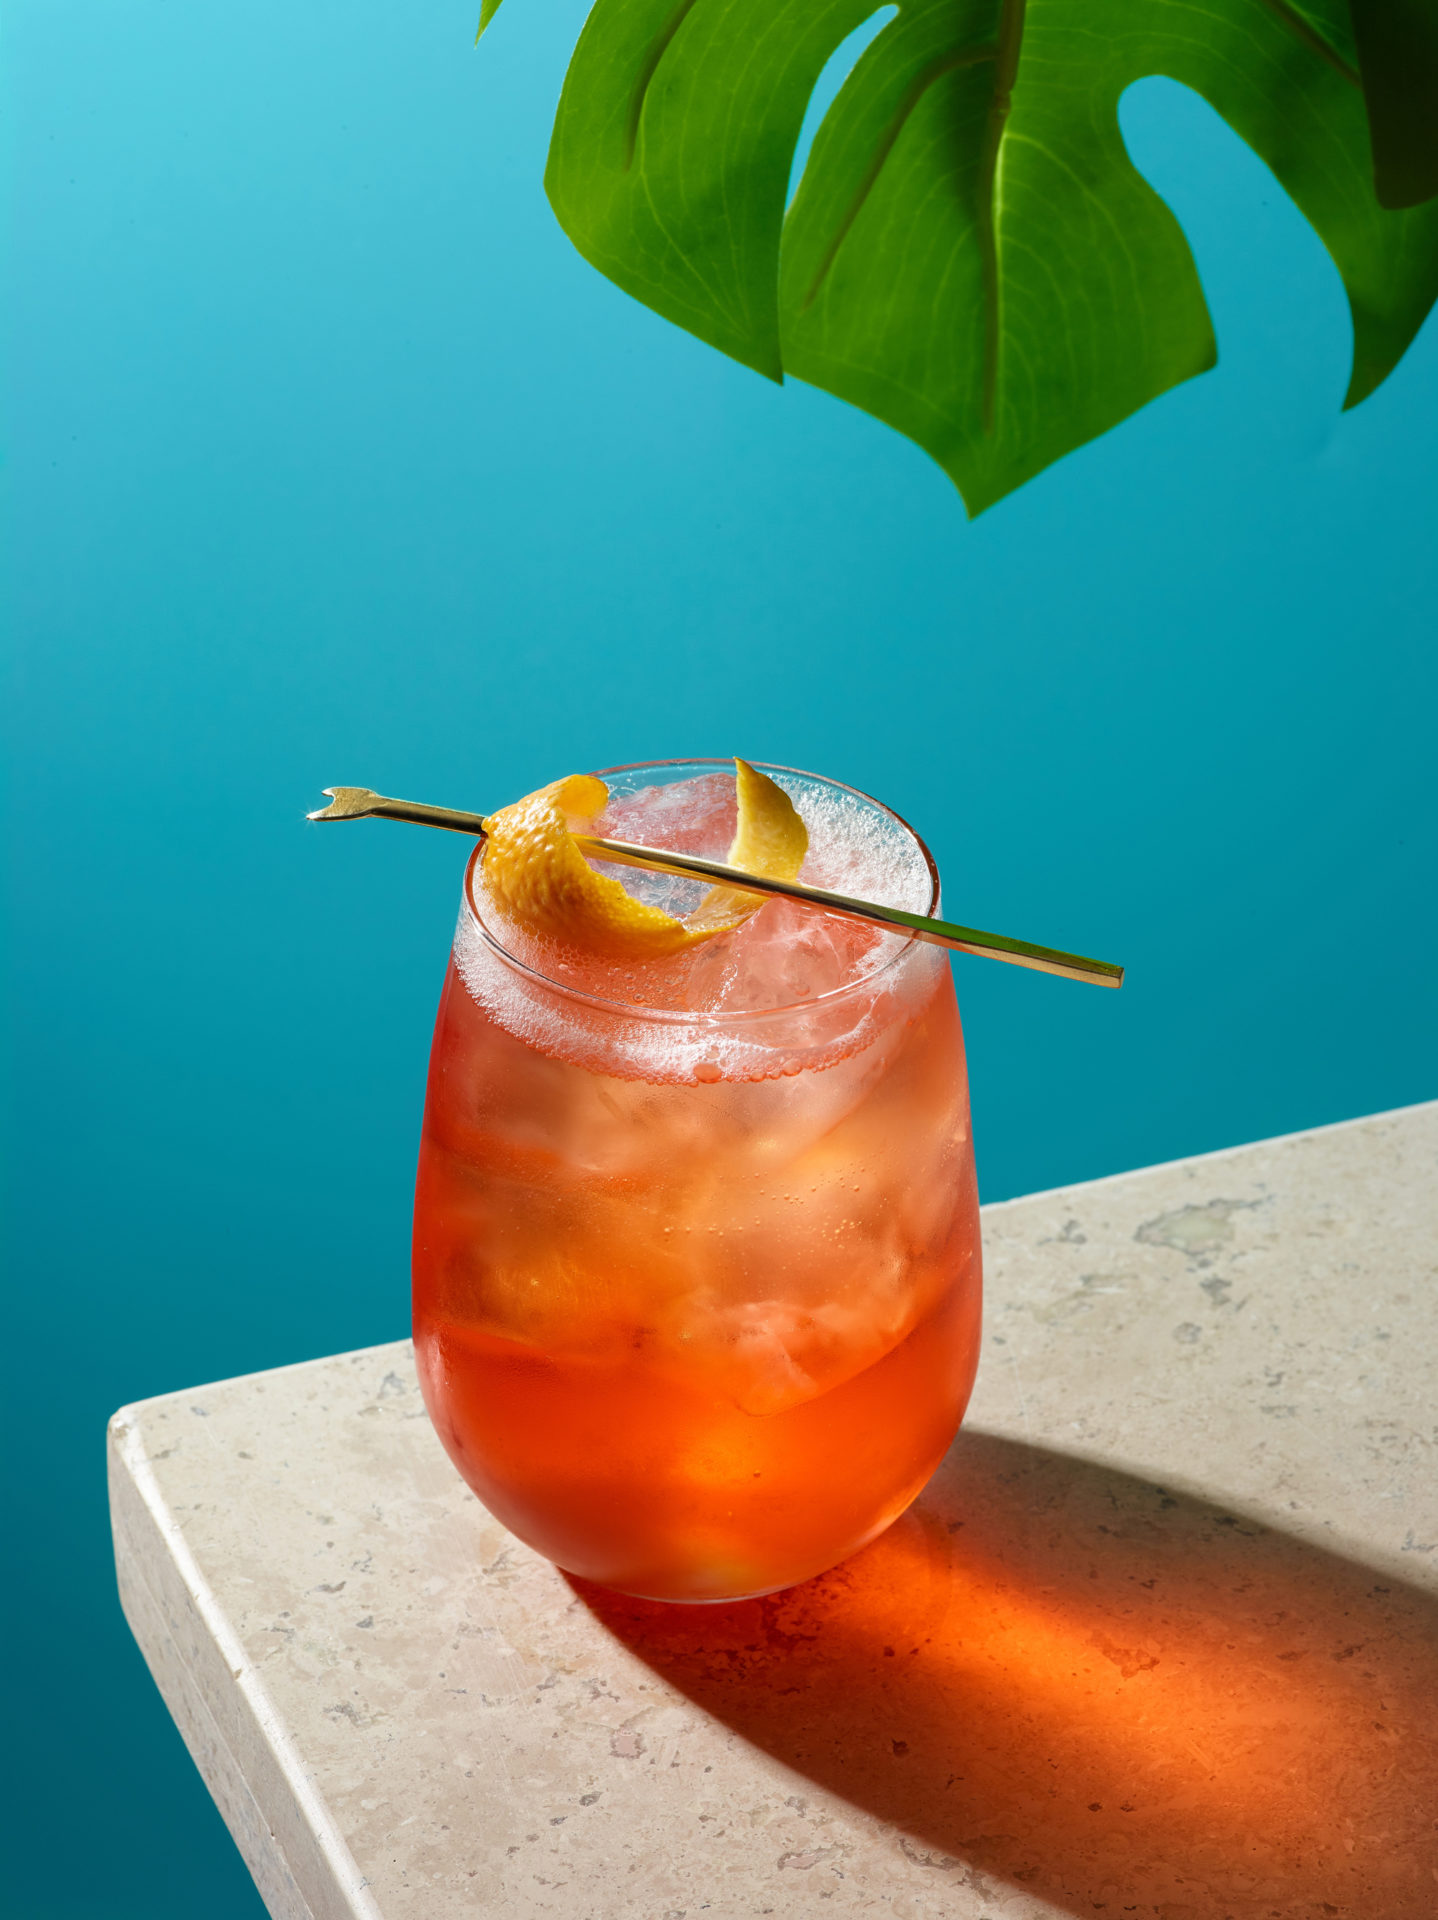 Aperol Spritz with orange peel garnish on a beige stone surface with a bright blue background. Served in a stemless wine glass over ice, the drink is a vibrant reddish orange color. A tropical leaf is hanging into the frame from the upper left side.